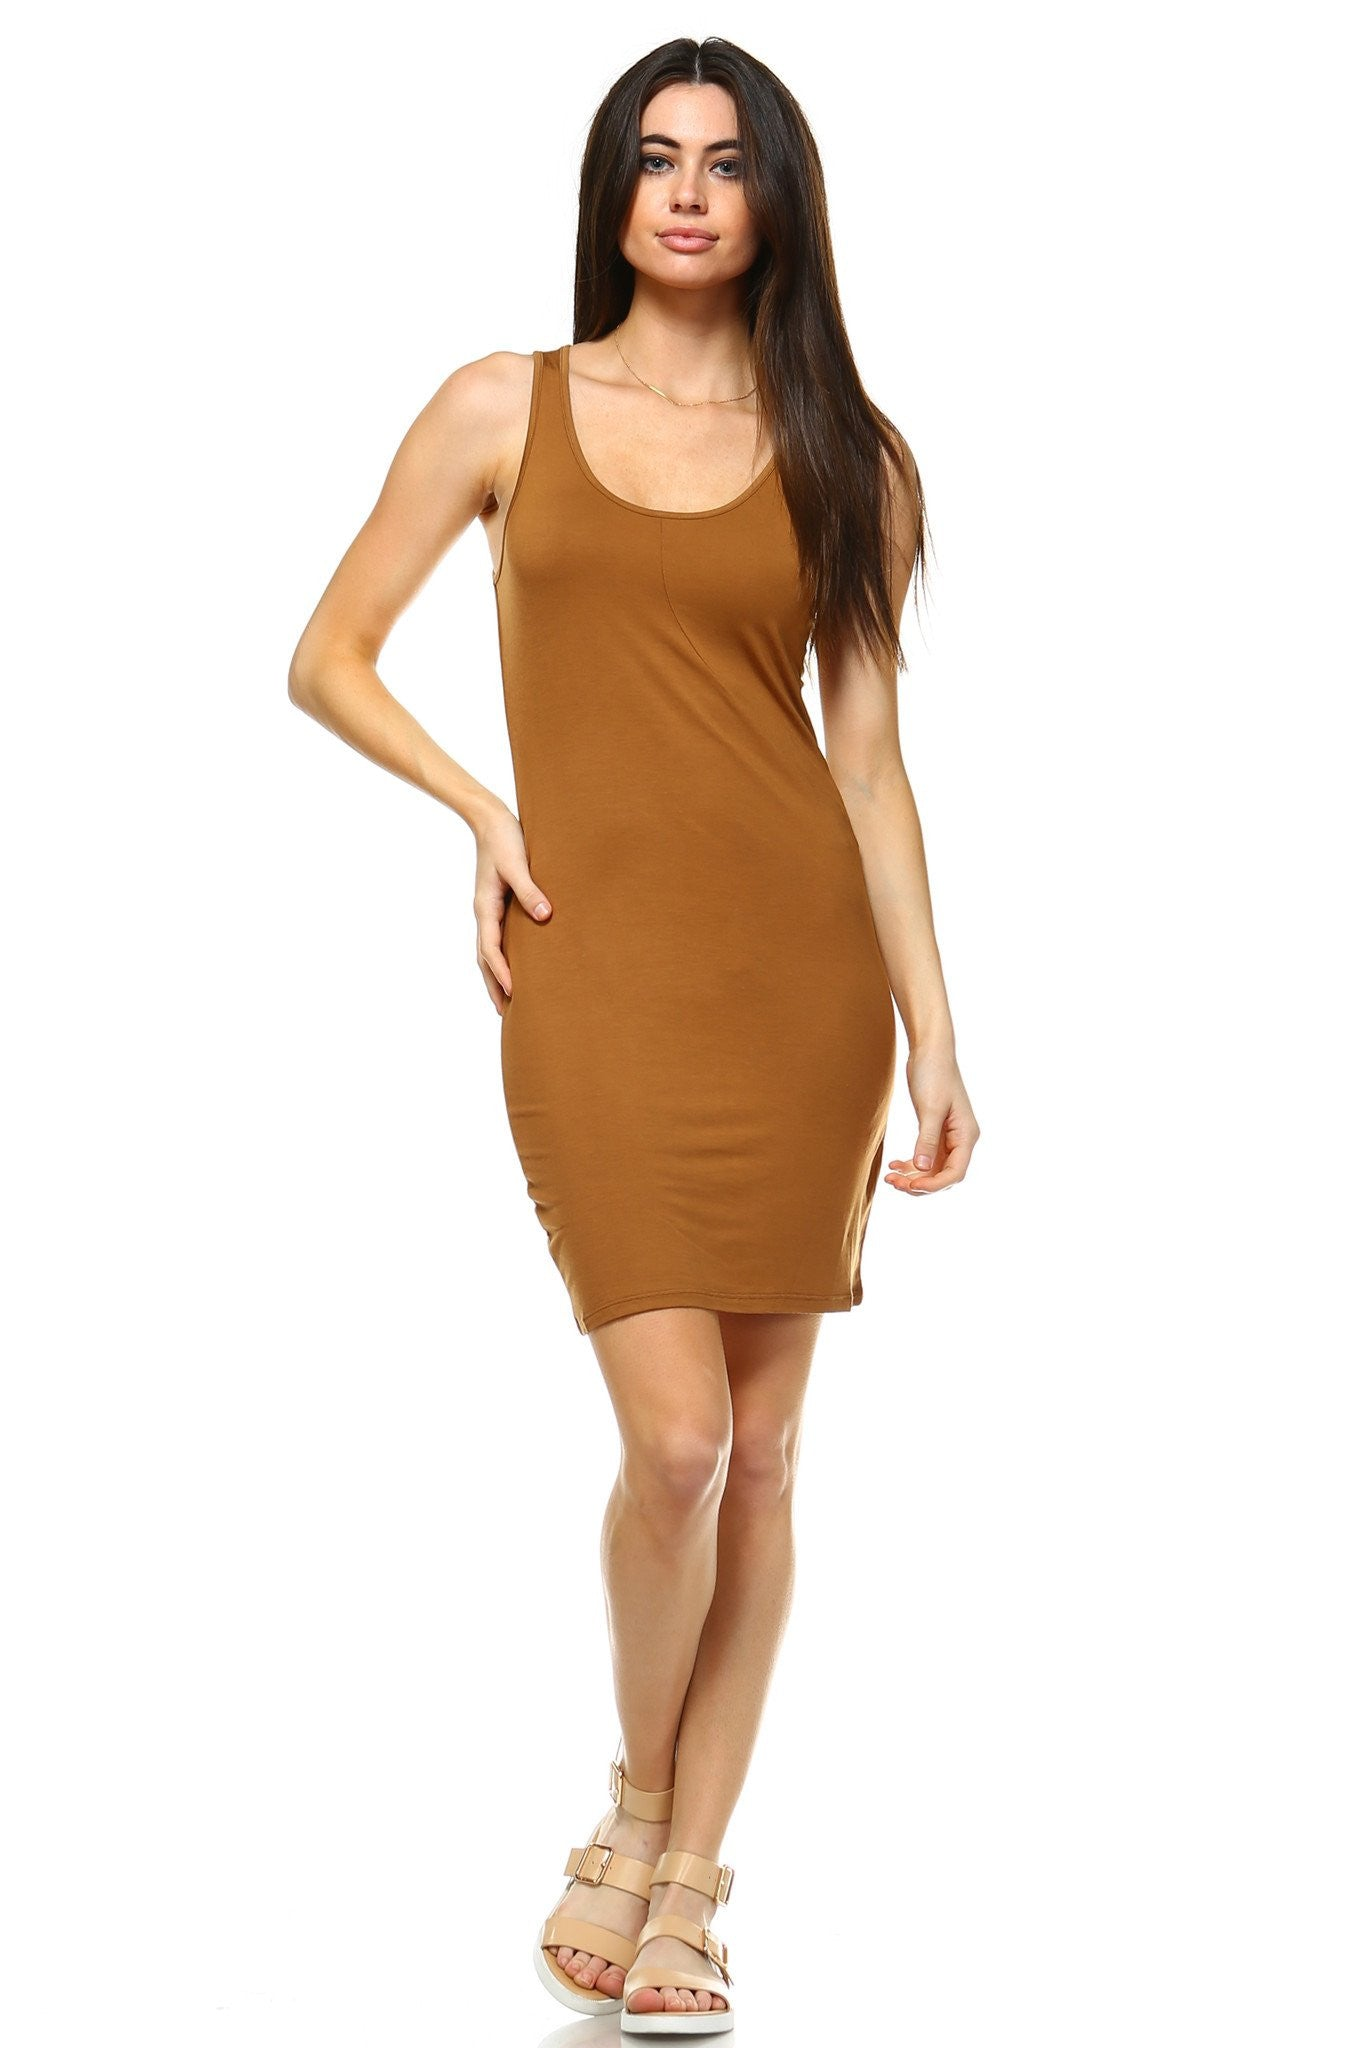 Women's Sleeveless Bodycon Dress